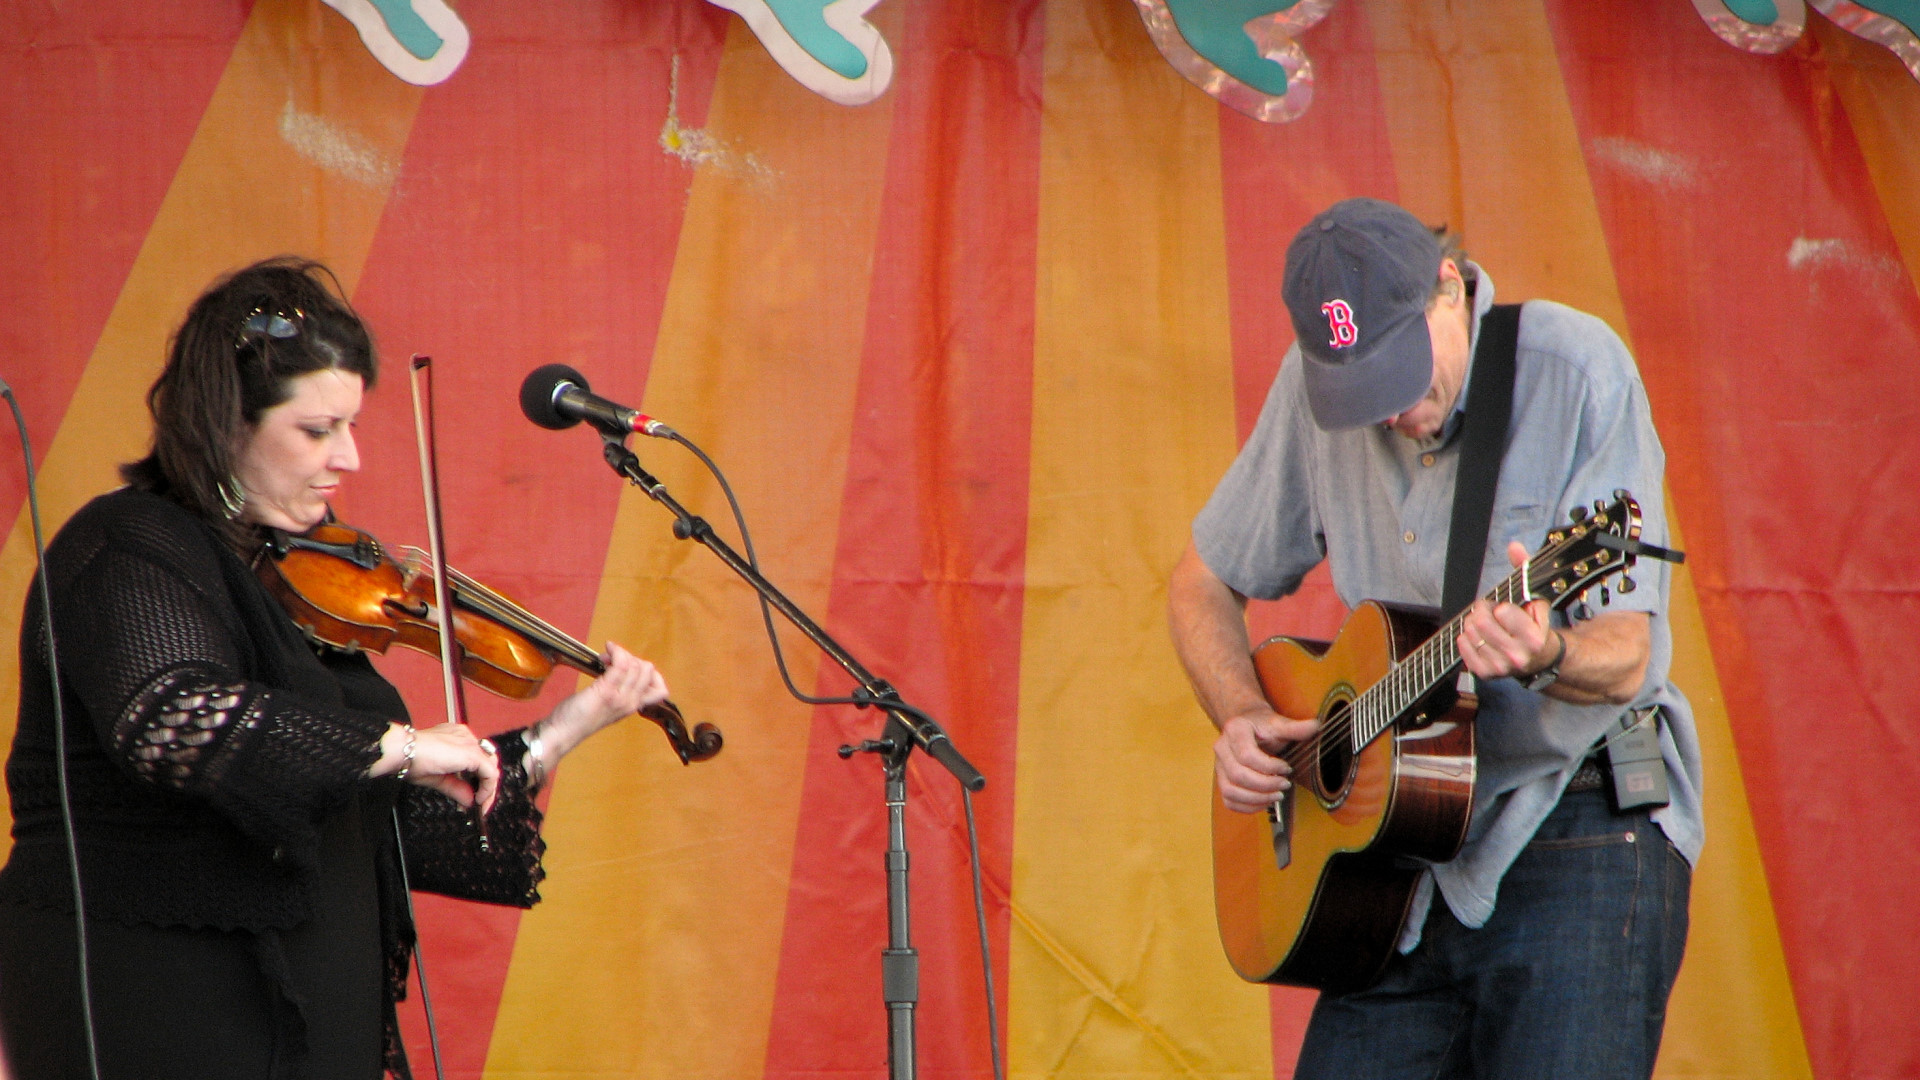 James Taylor and his violinist at Jazz Fest 2009